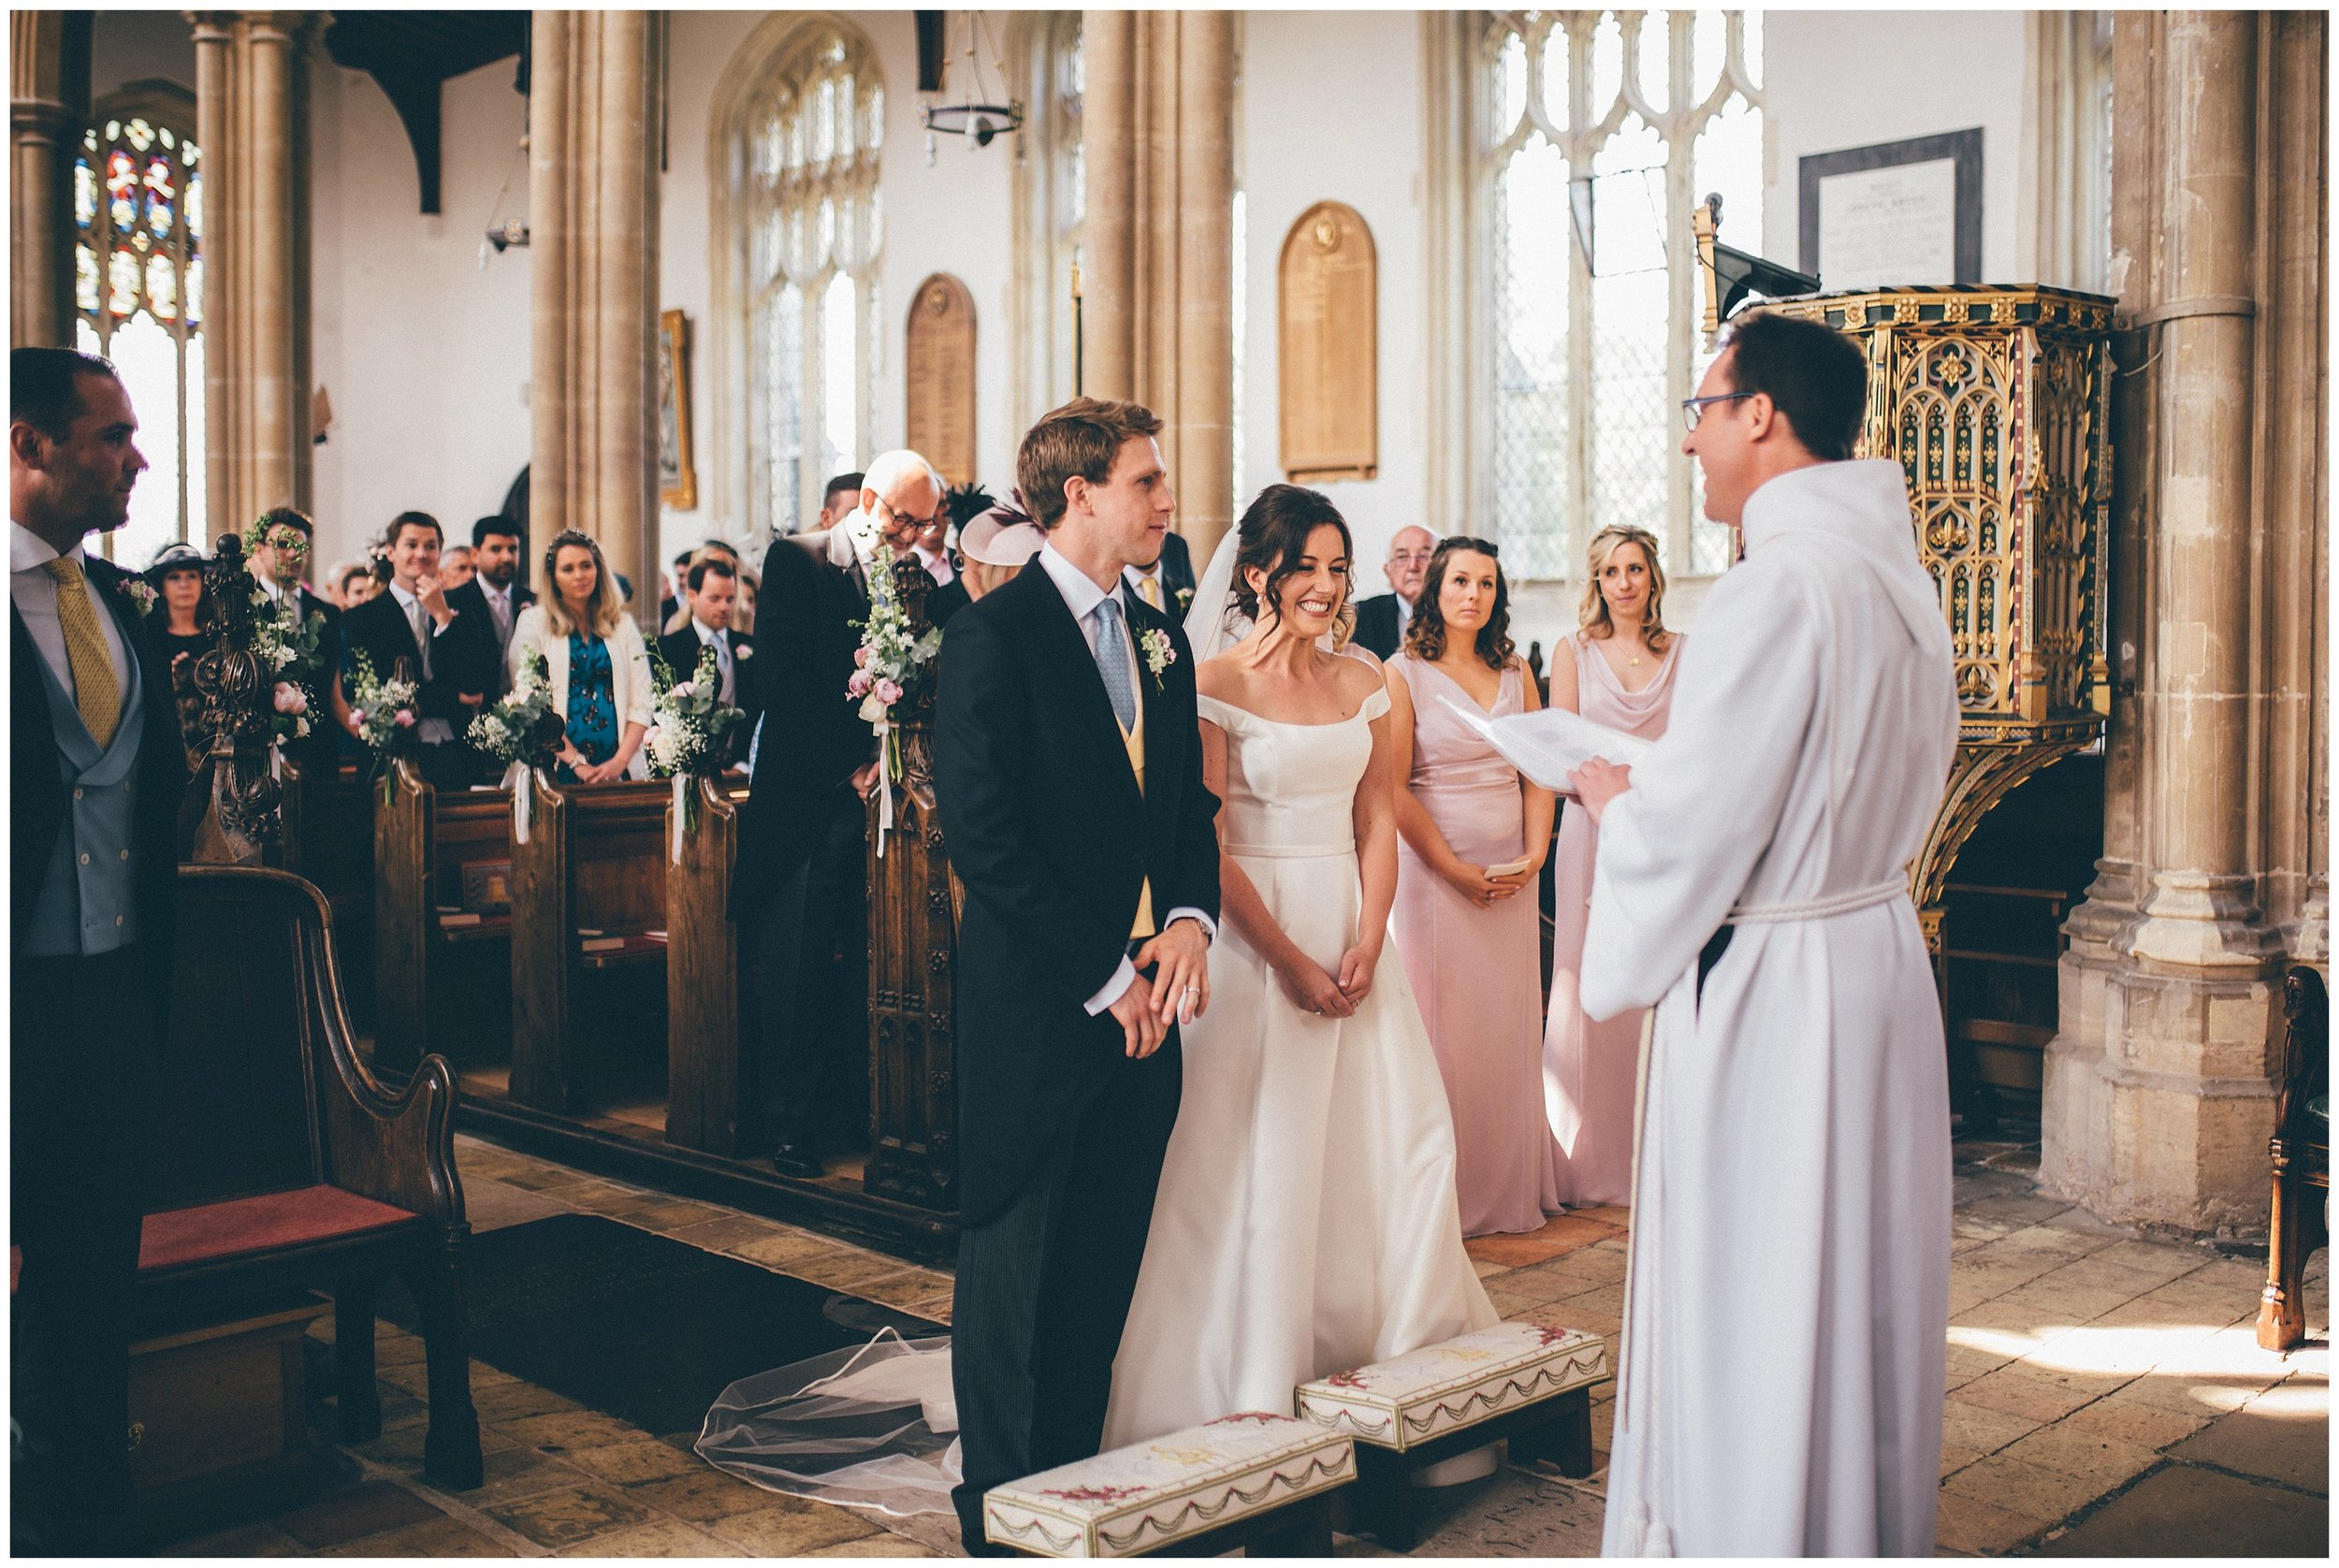 Wedding at St Edmunds Church in Southwold.